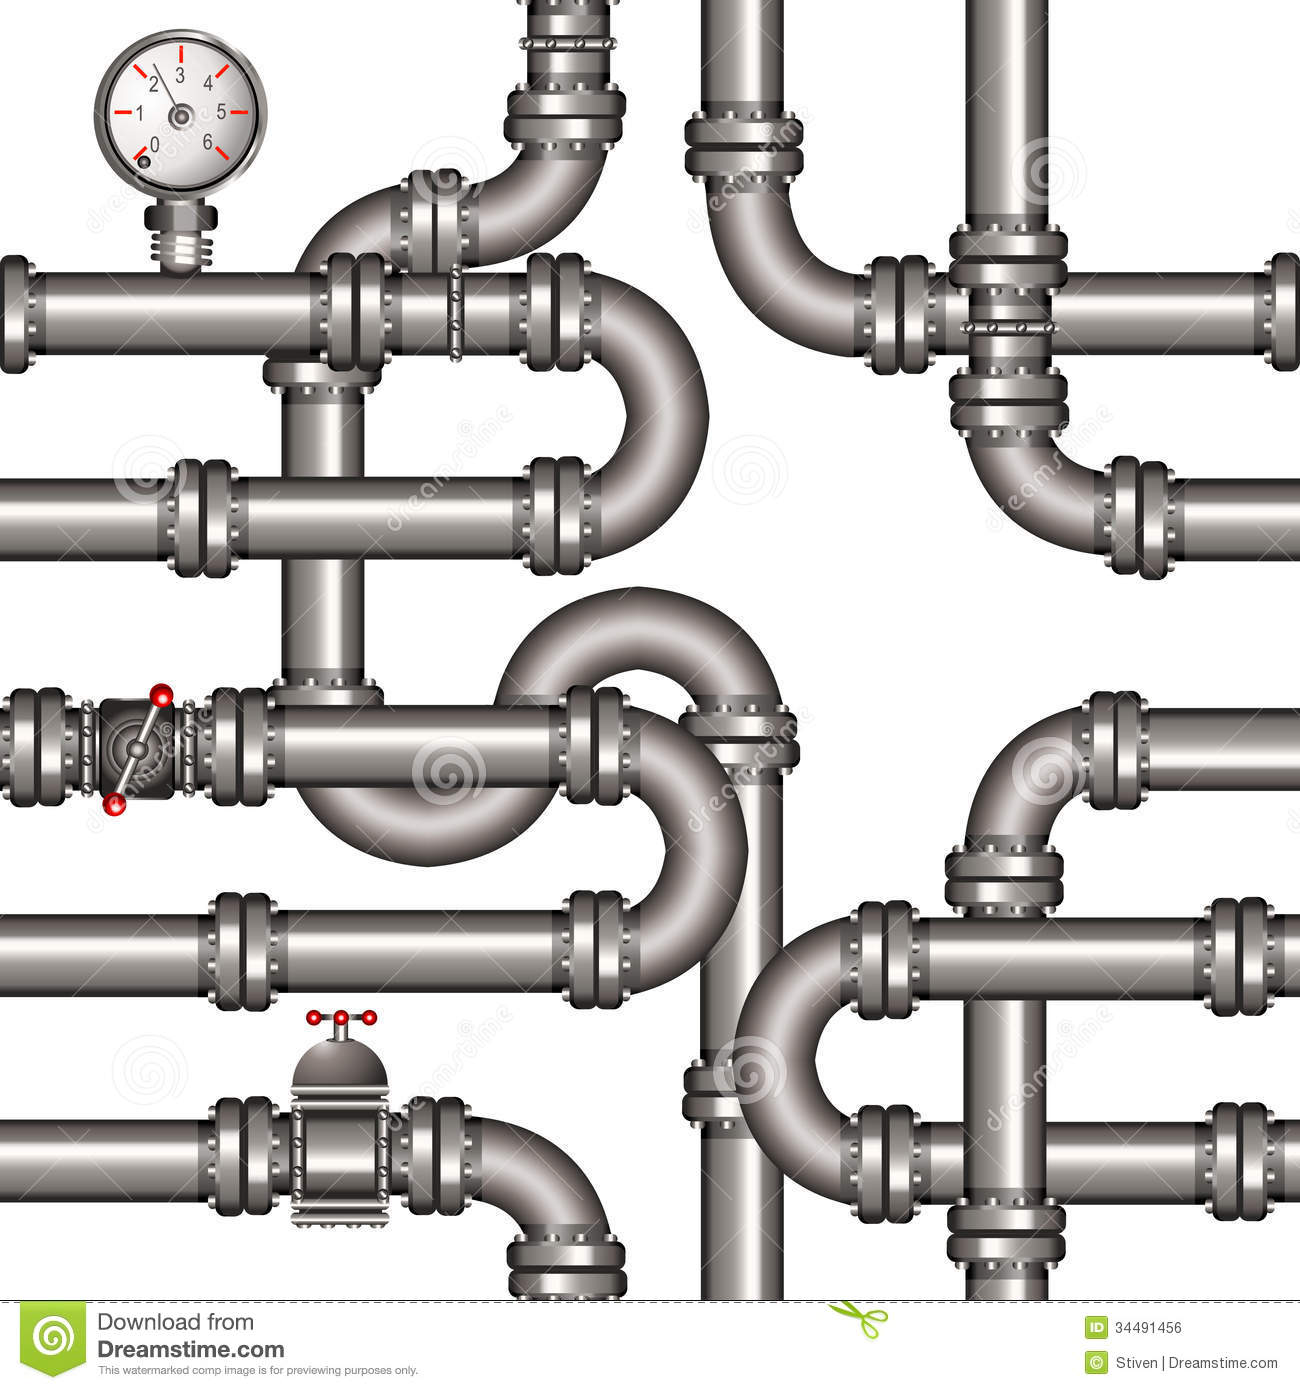 Sewage Pumping Stations together with T1129 Regulateur Sard in addition Stepxstepgenerator likewise Pf main as well Nih standard cad details. on gas tank design